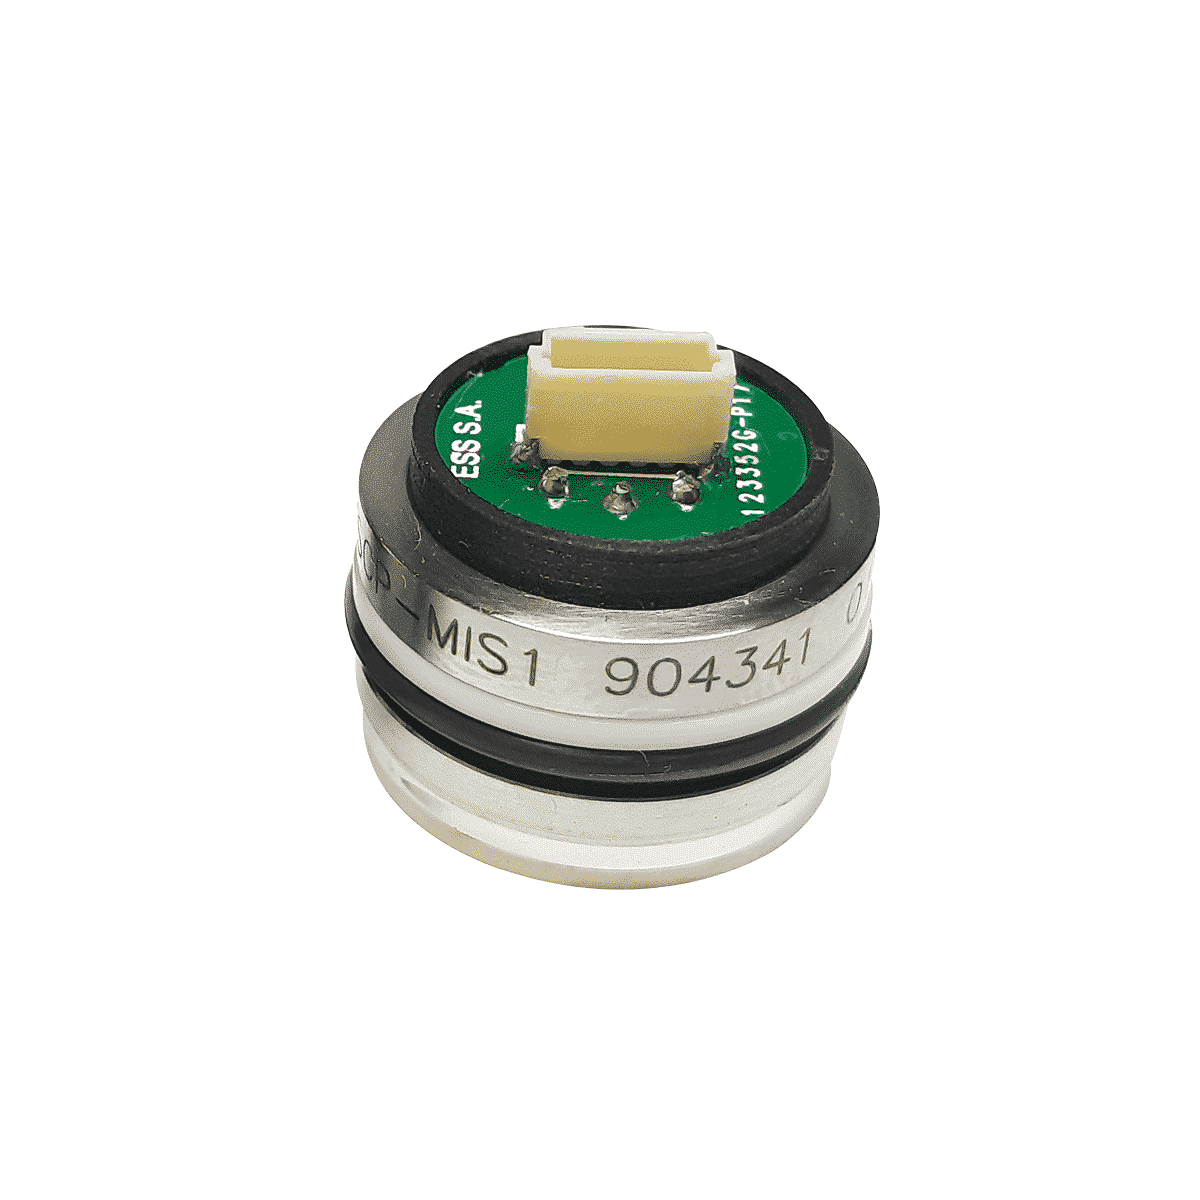 transducer for medium isolated systems